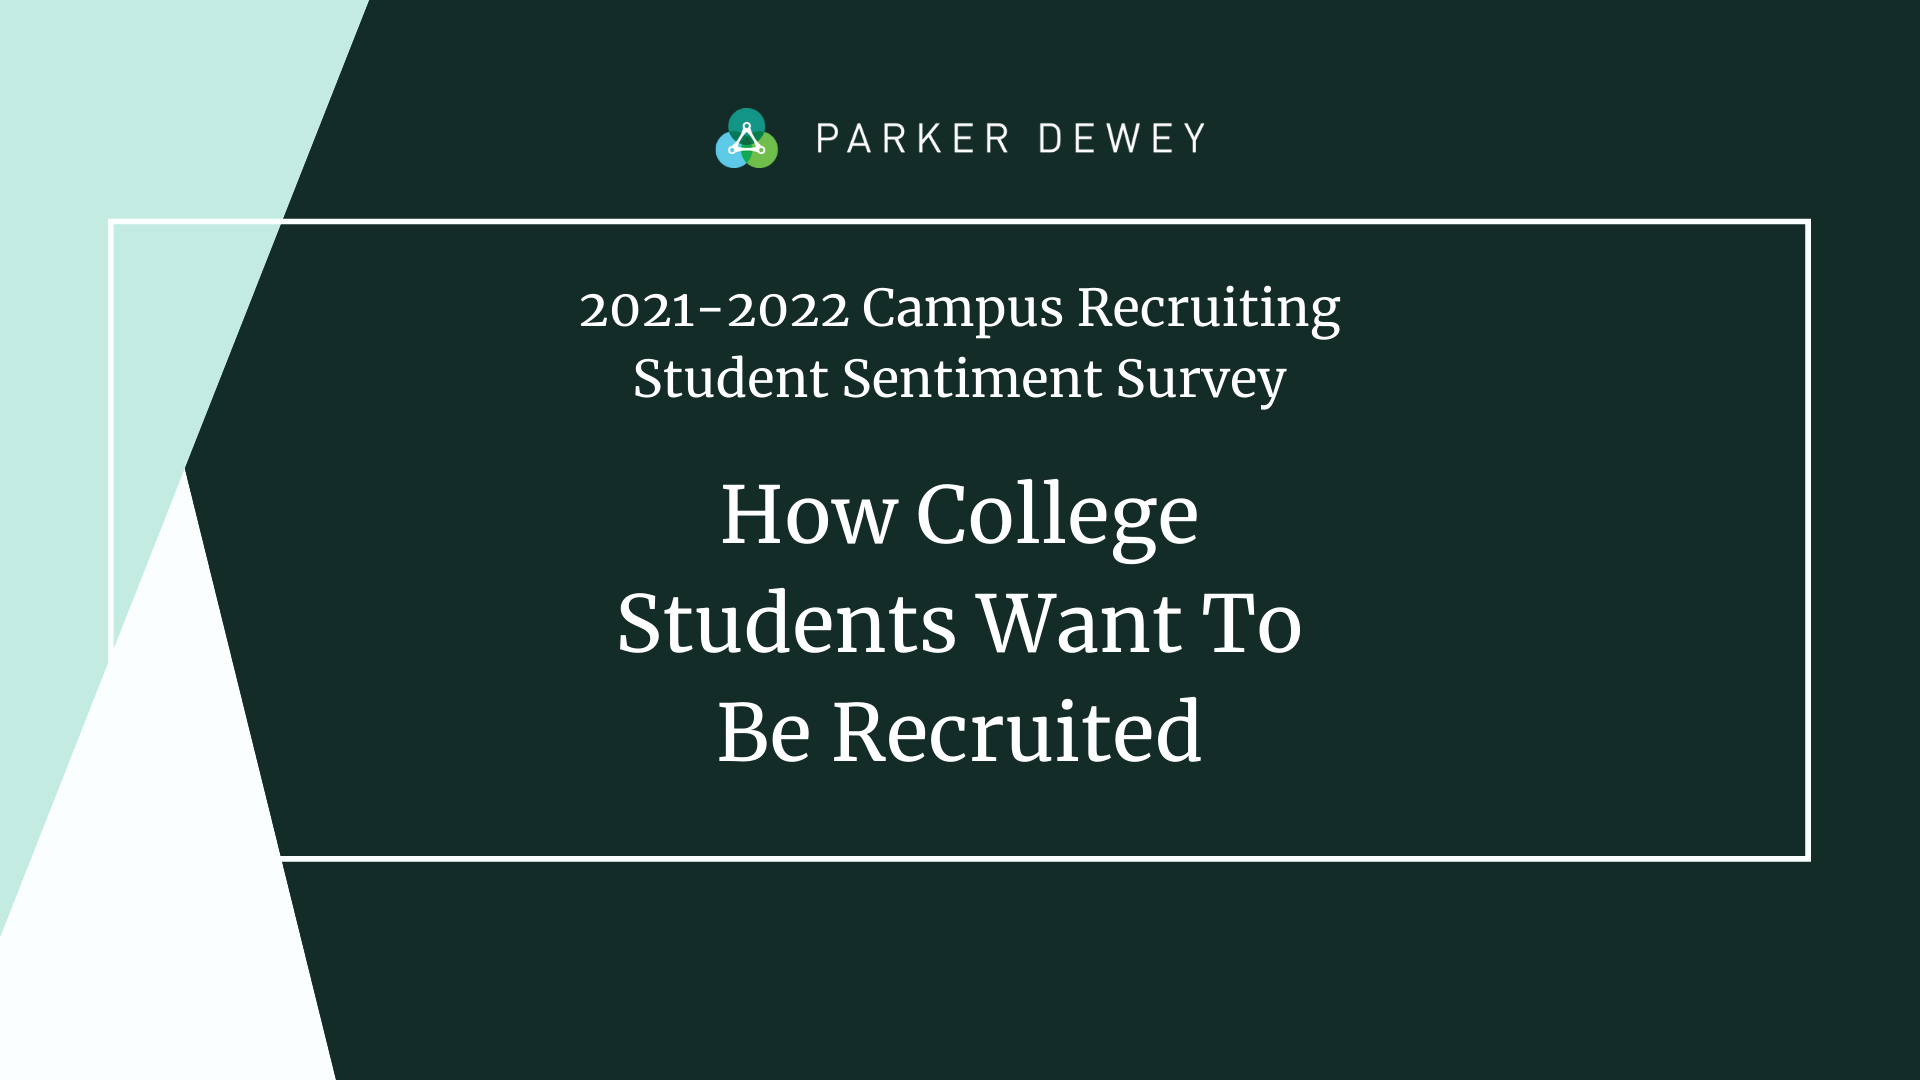 2021-2022 Campus Recruiting Student Sentiment Survey How College Students Want To Be Recruited